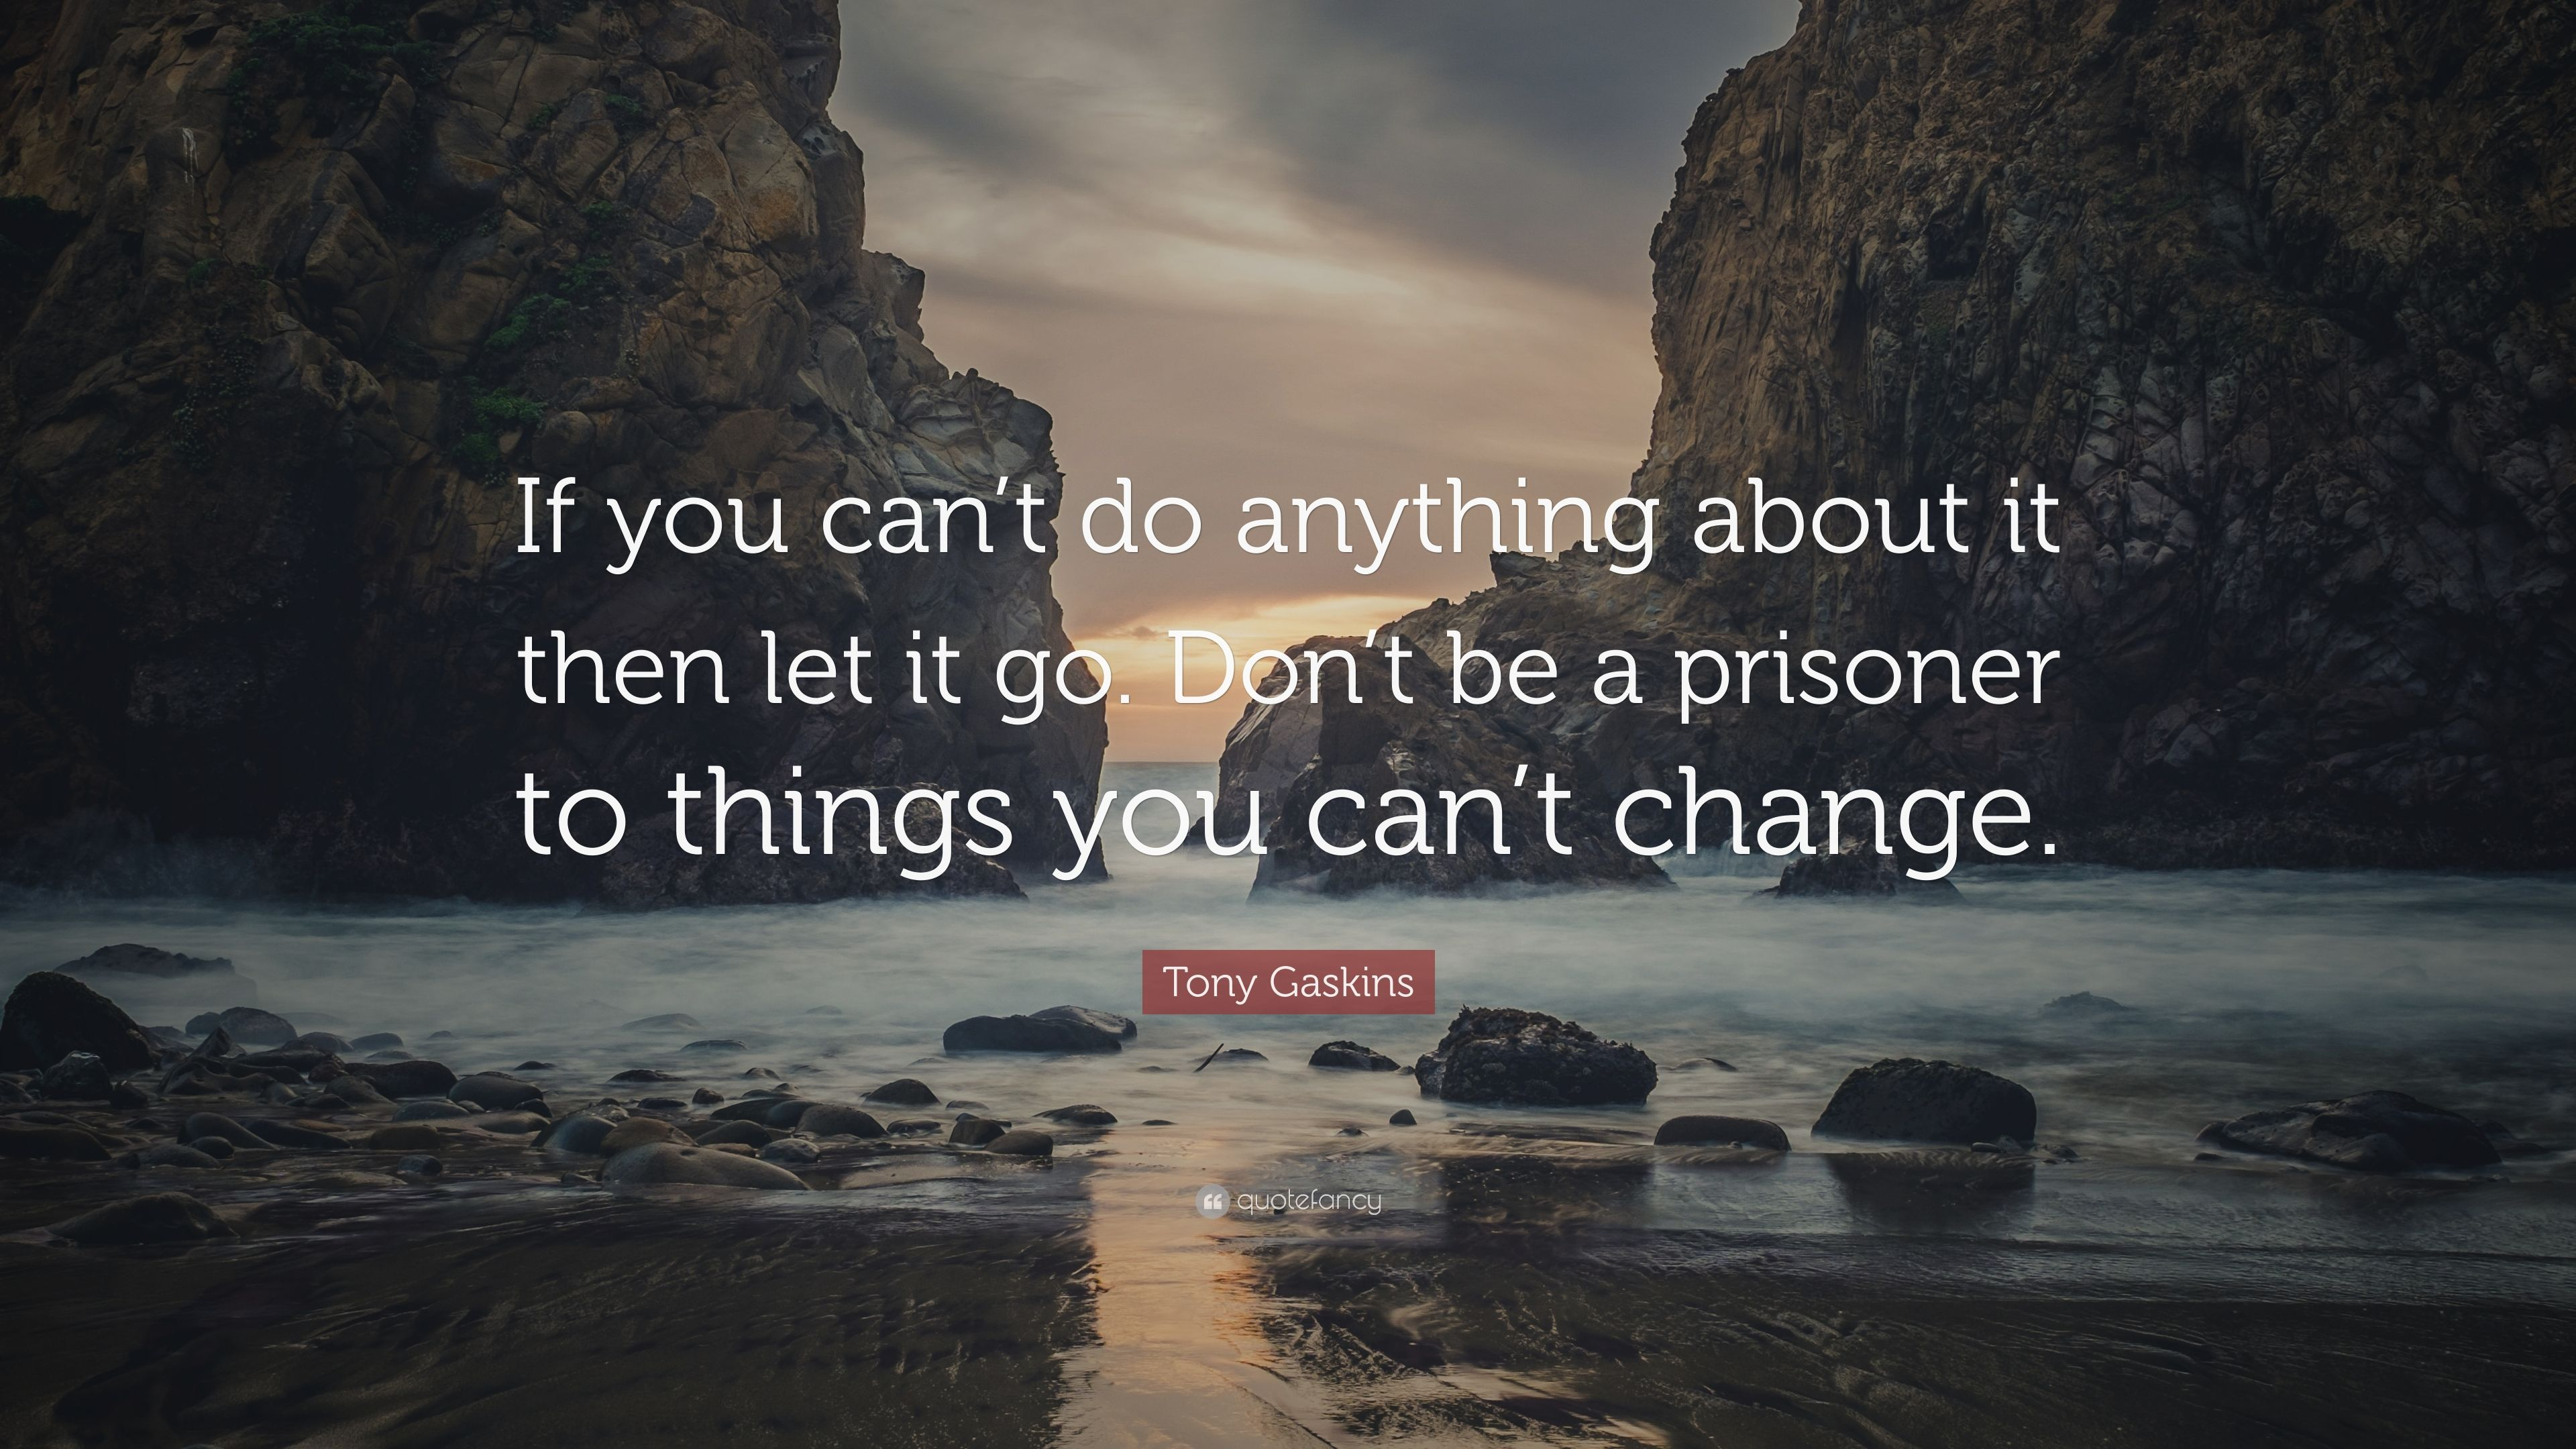 Tony Gaskins Quote: If you cant do anything about it